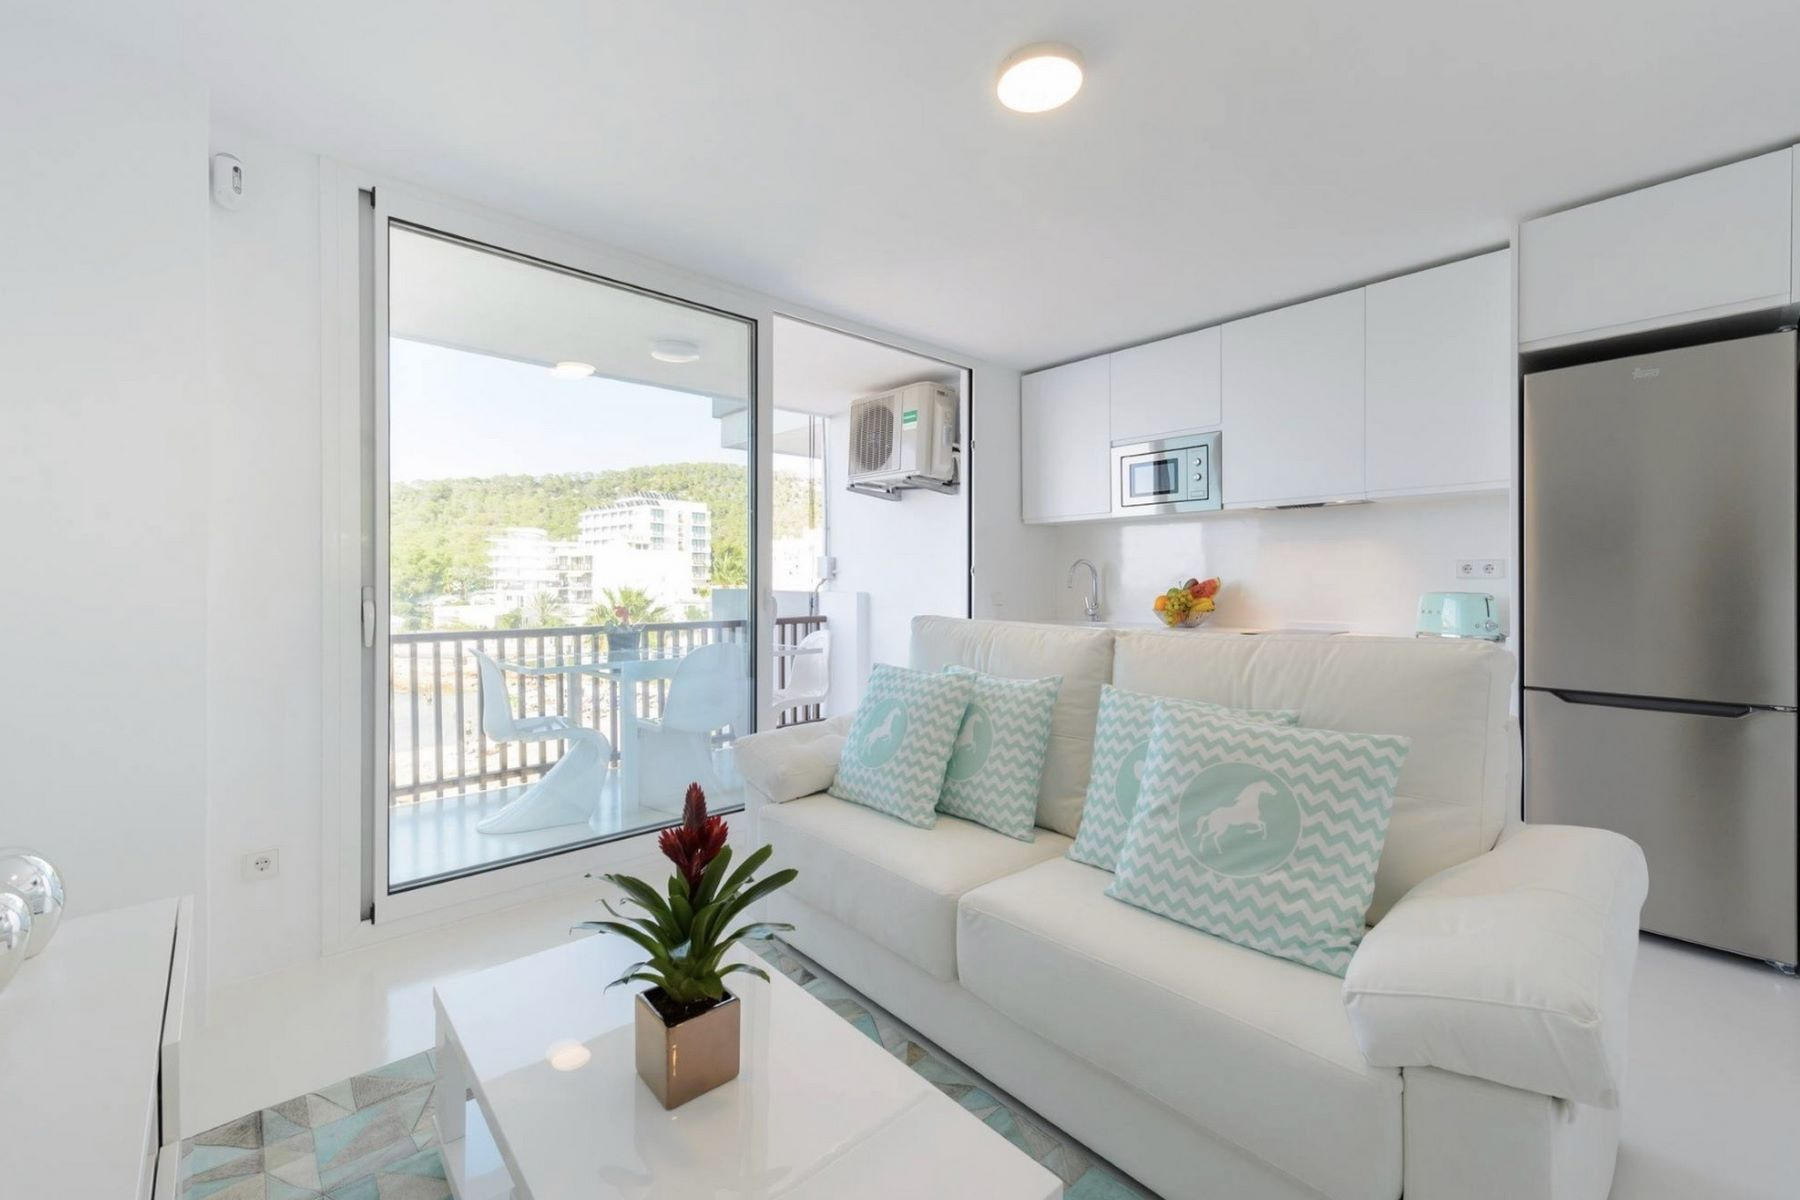 Single Family Home for Sale at Front Line apartment for sale in S. Antonio - Ibiza Ibiza, Balearic Islands Spain